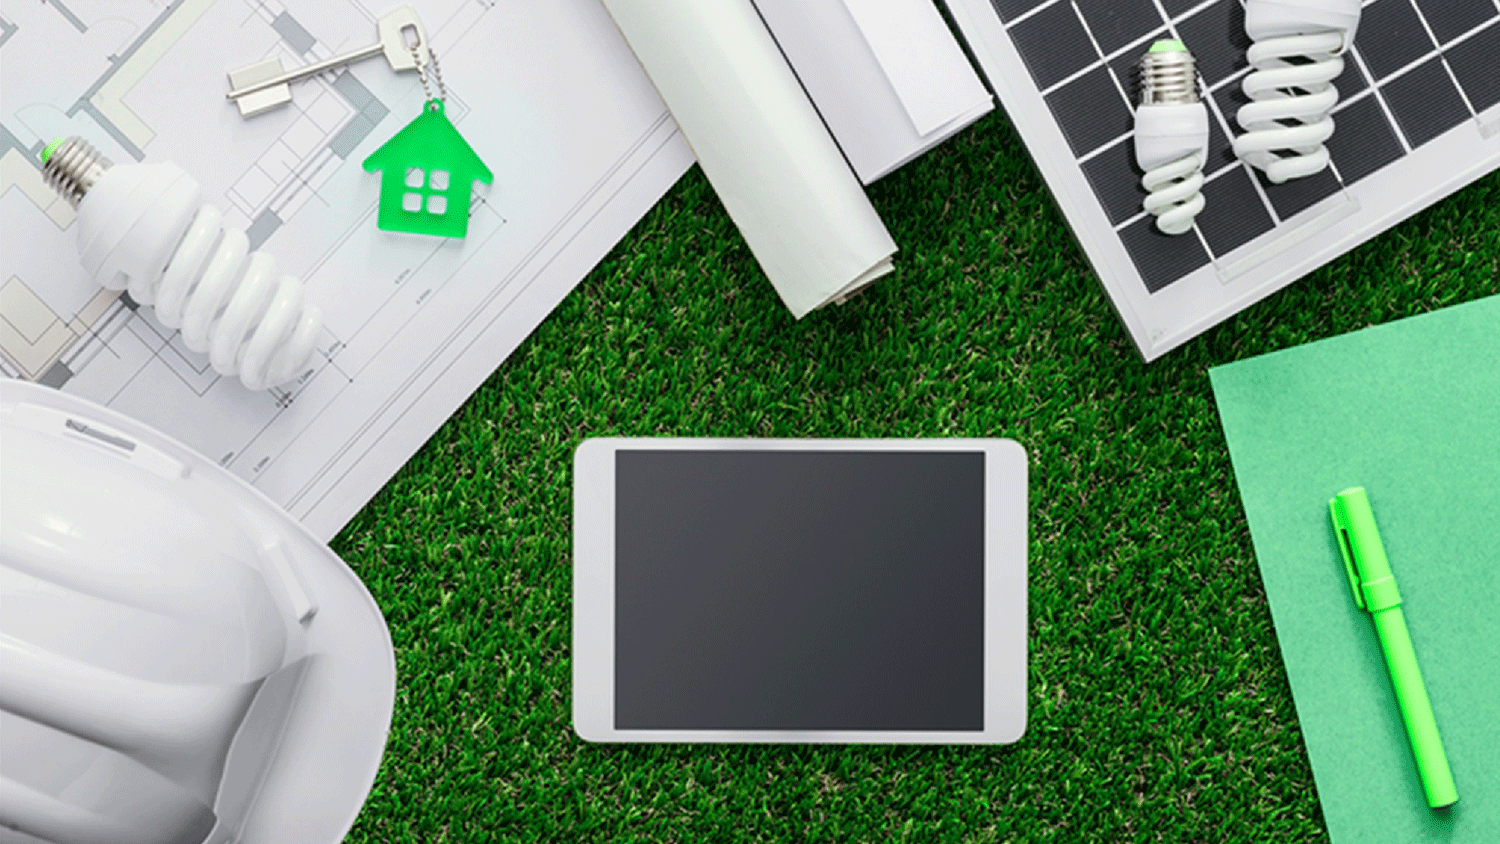 BUILDING GREEN IS BECOMING INCREASINGLY AFFORDABLE